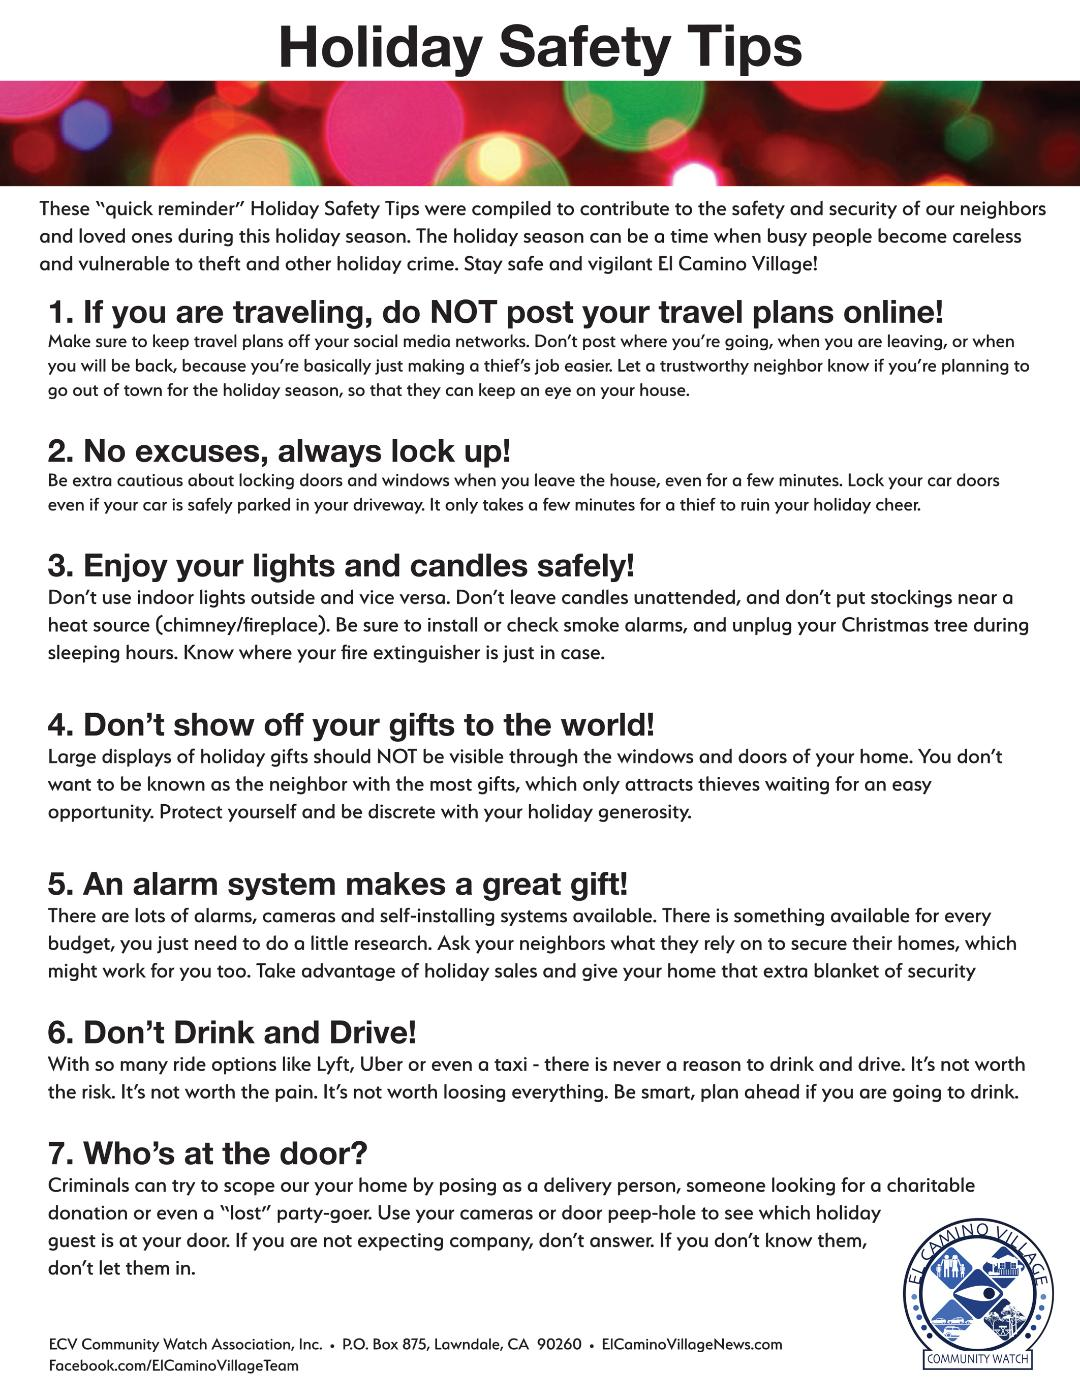 Holiday safety tips.jpg